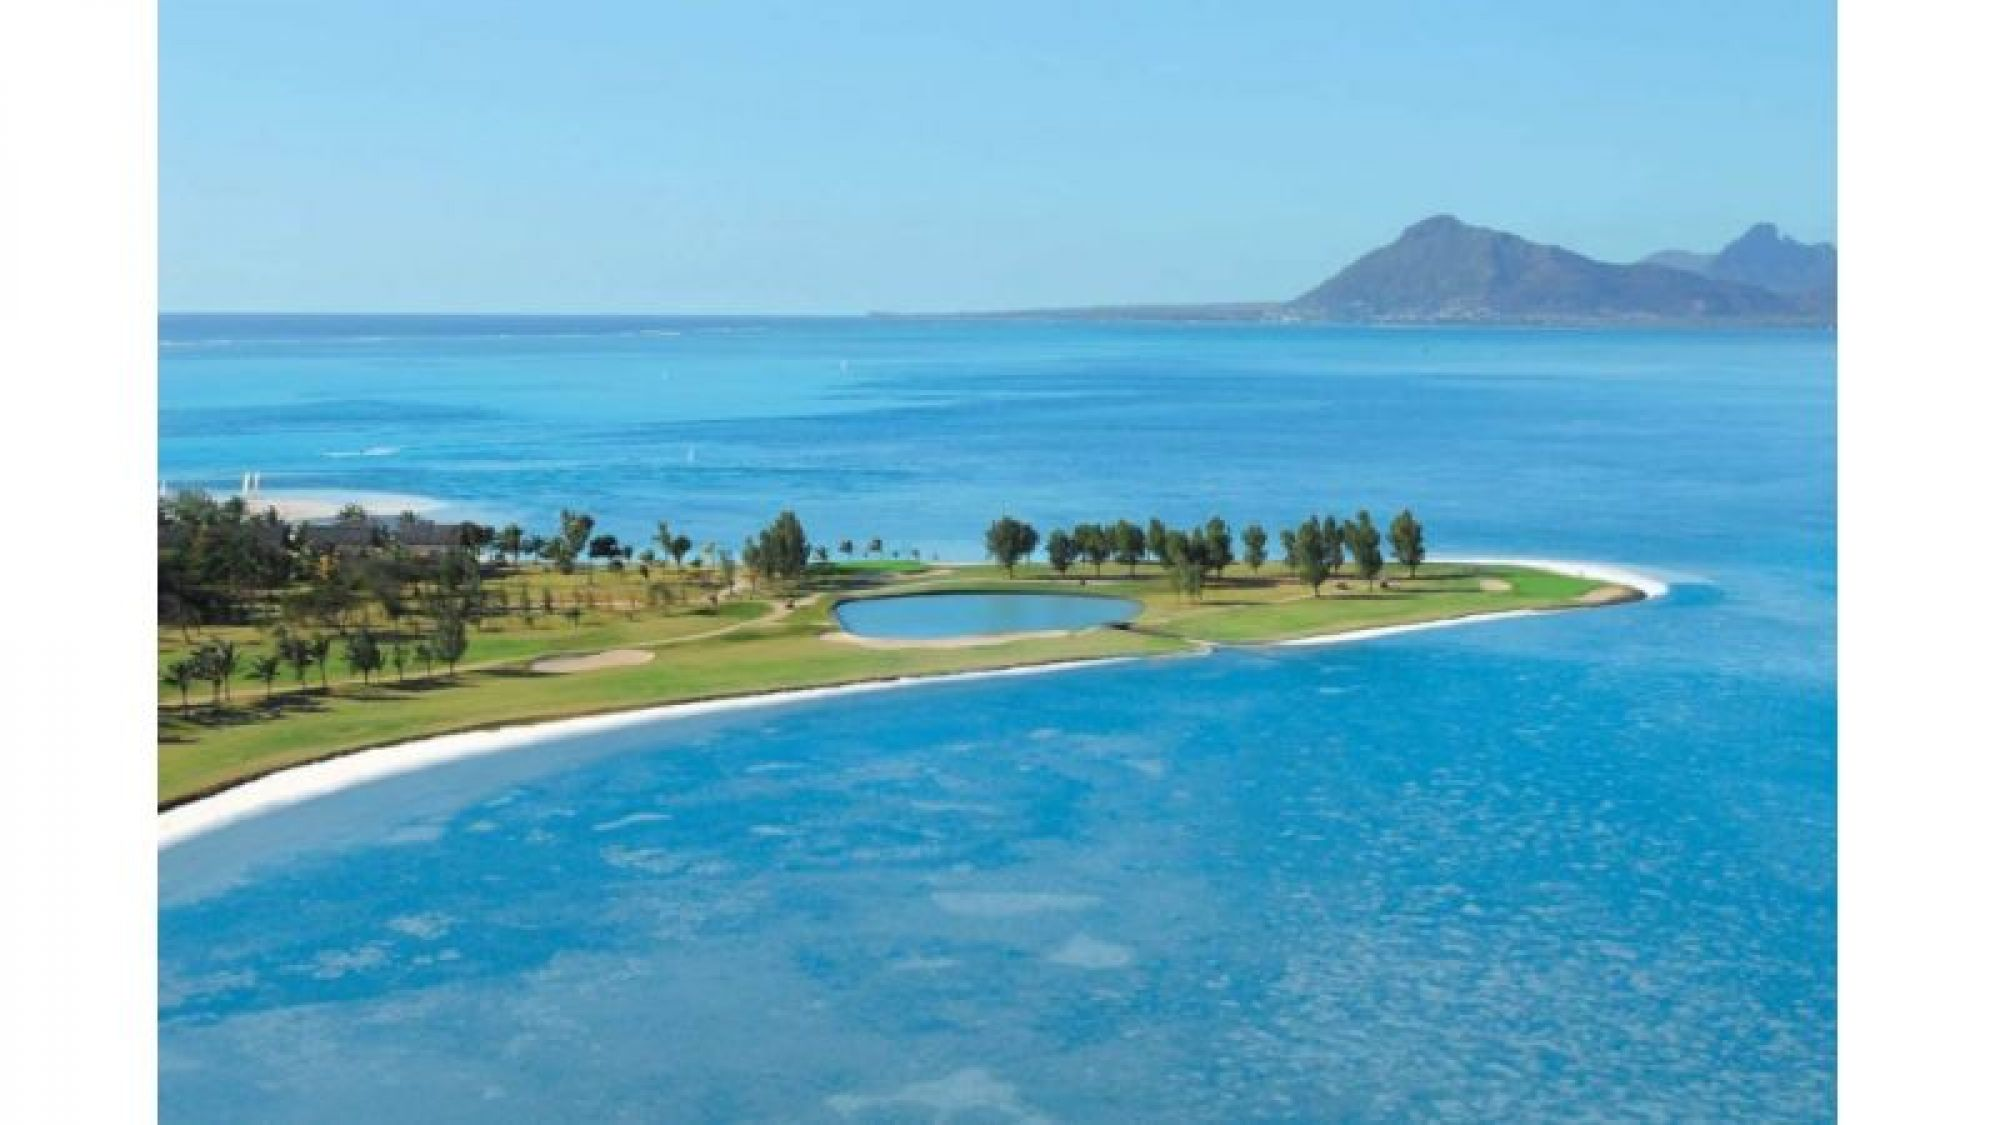 Paradis Golf Club consists of several of the leading golf course near Mauritius